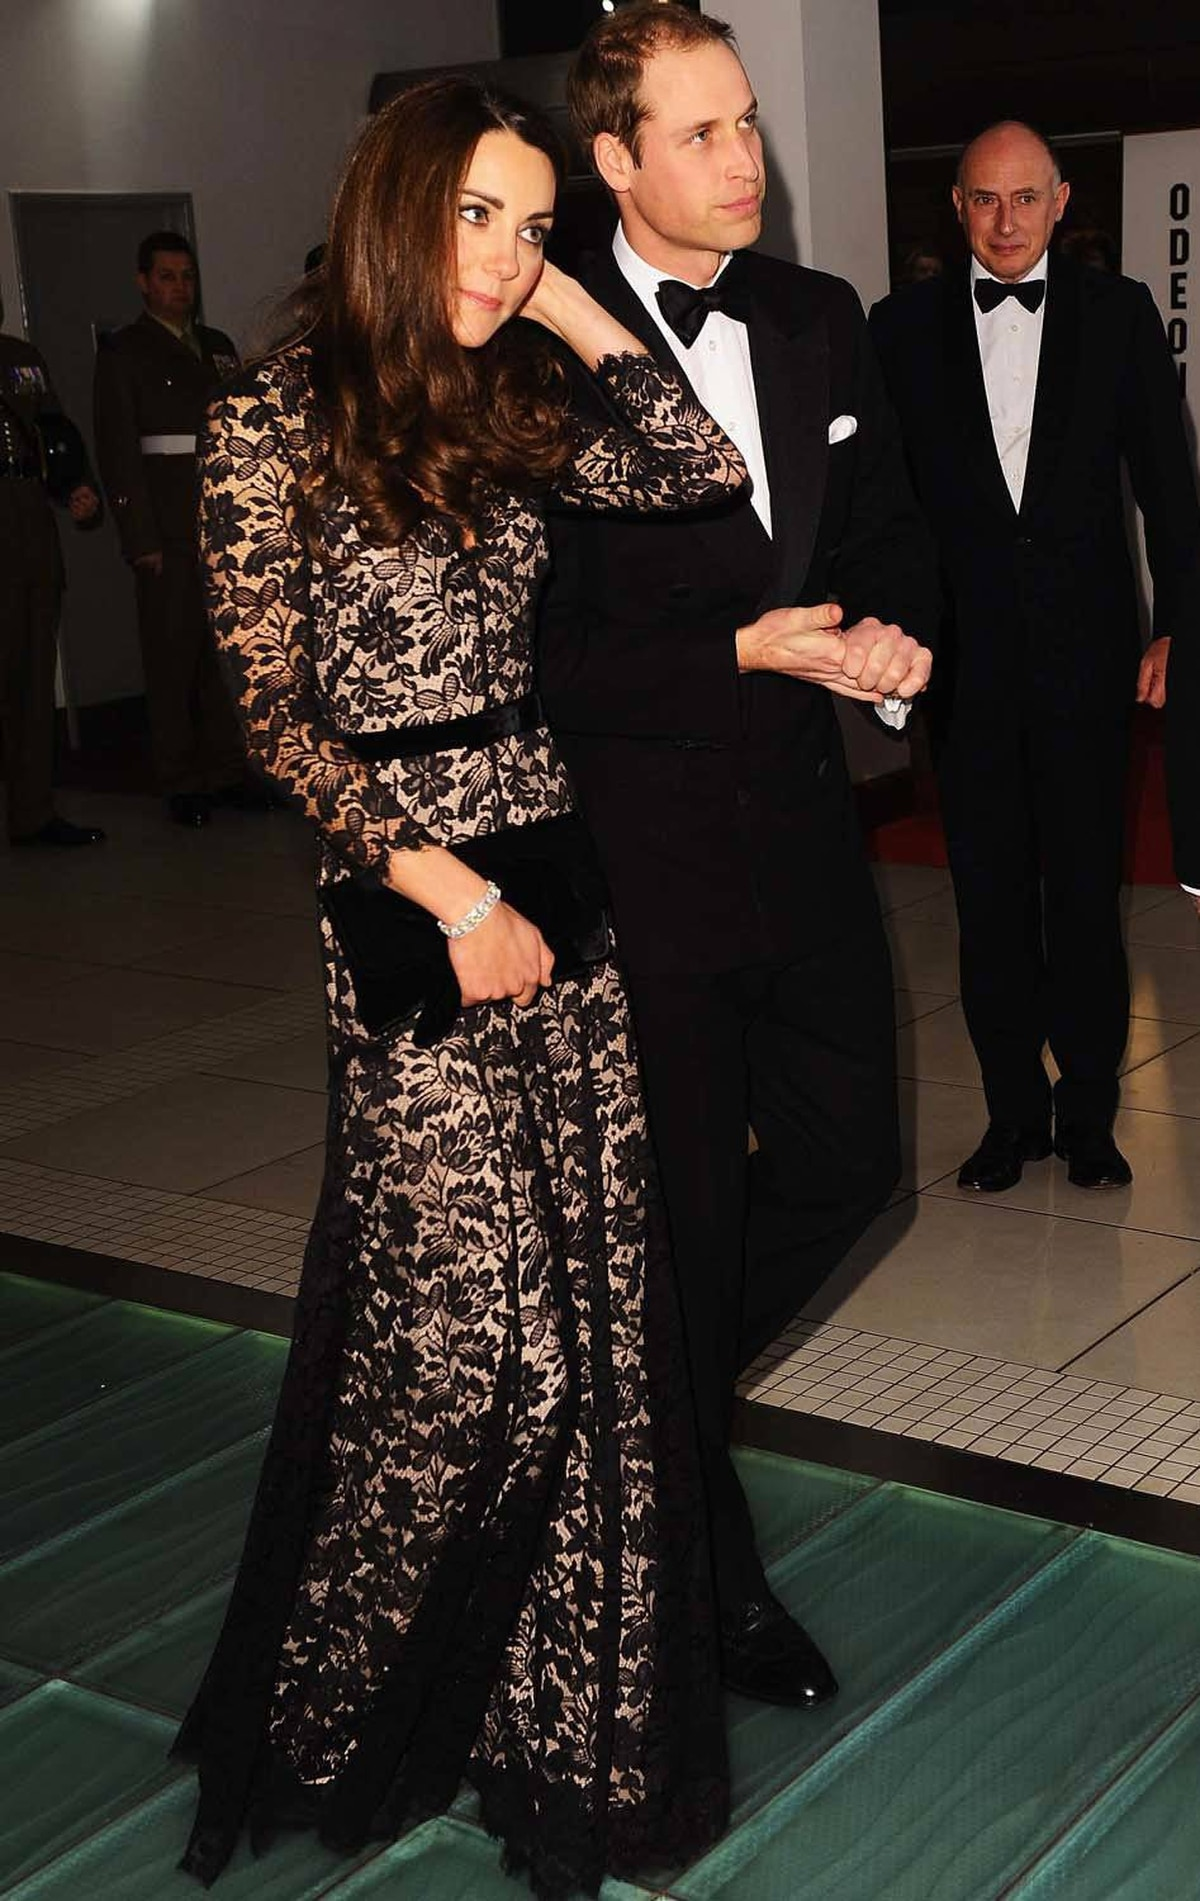 Kate attends the London premiere of the film War Horse in a slinky black lace Temperley gown on January 8.